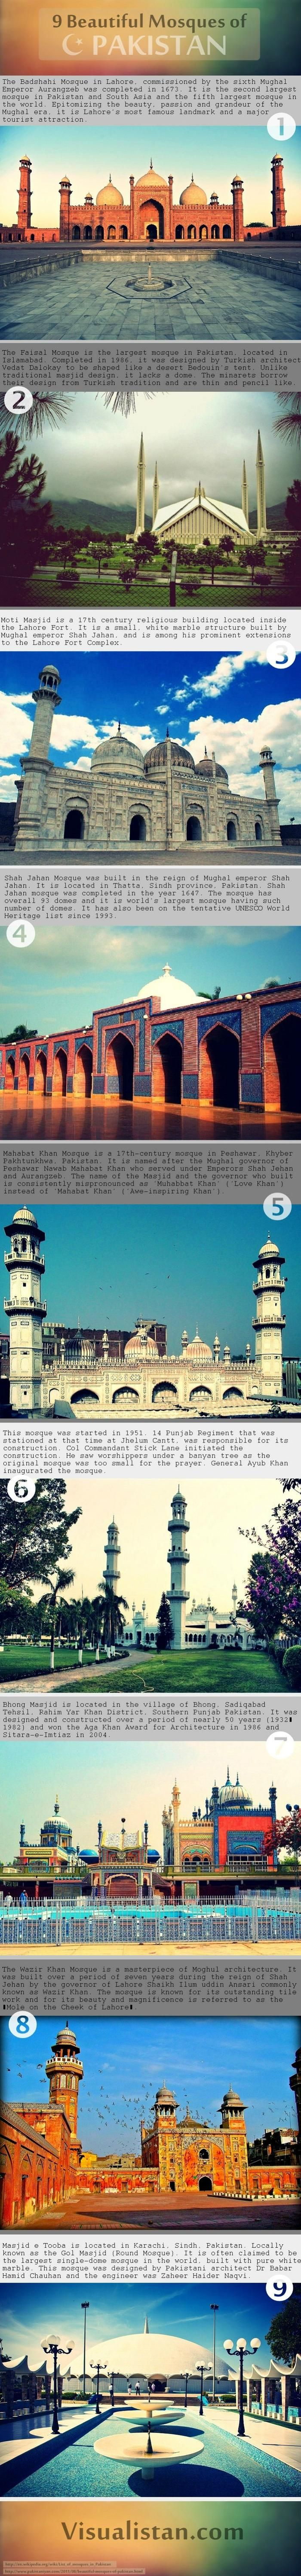 9 Beautiful Mosques Of Pakistan  #Infographic #Mosques #Pakistan  #Travel